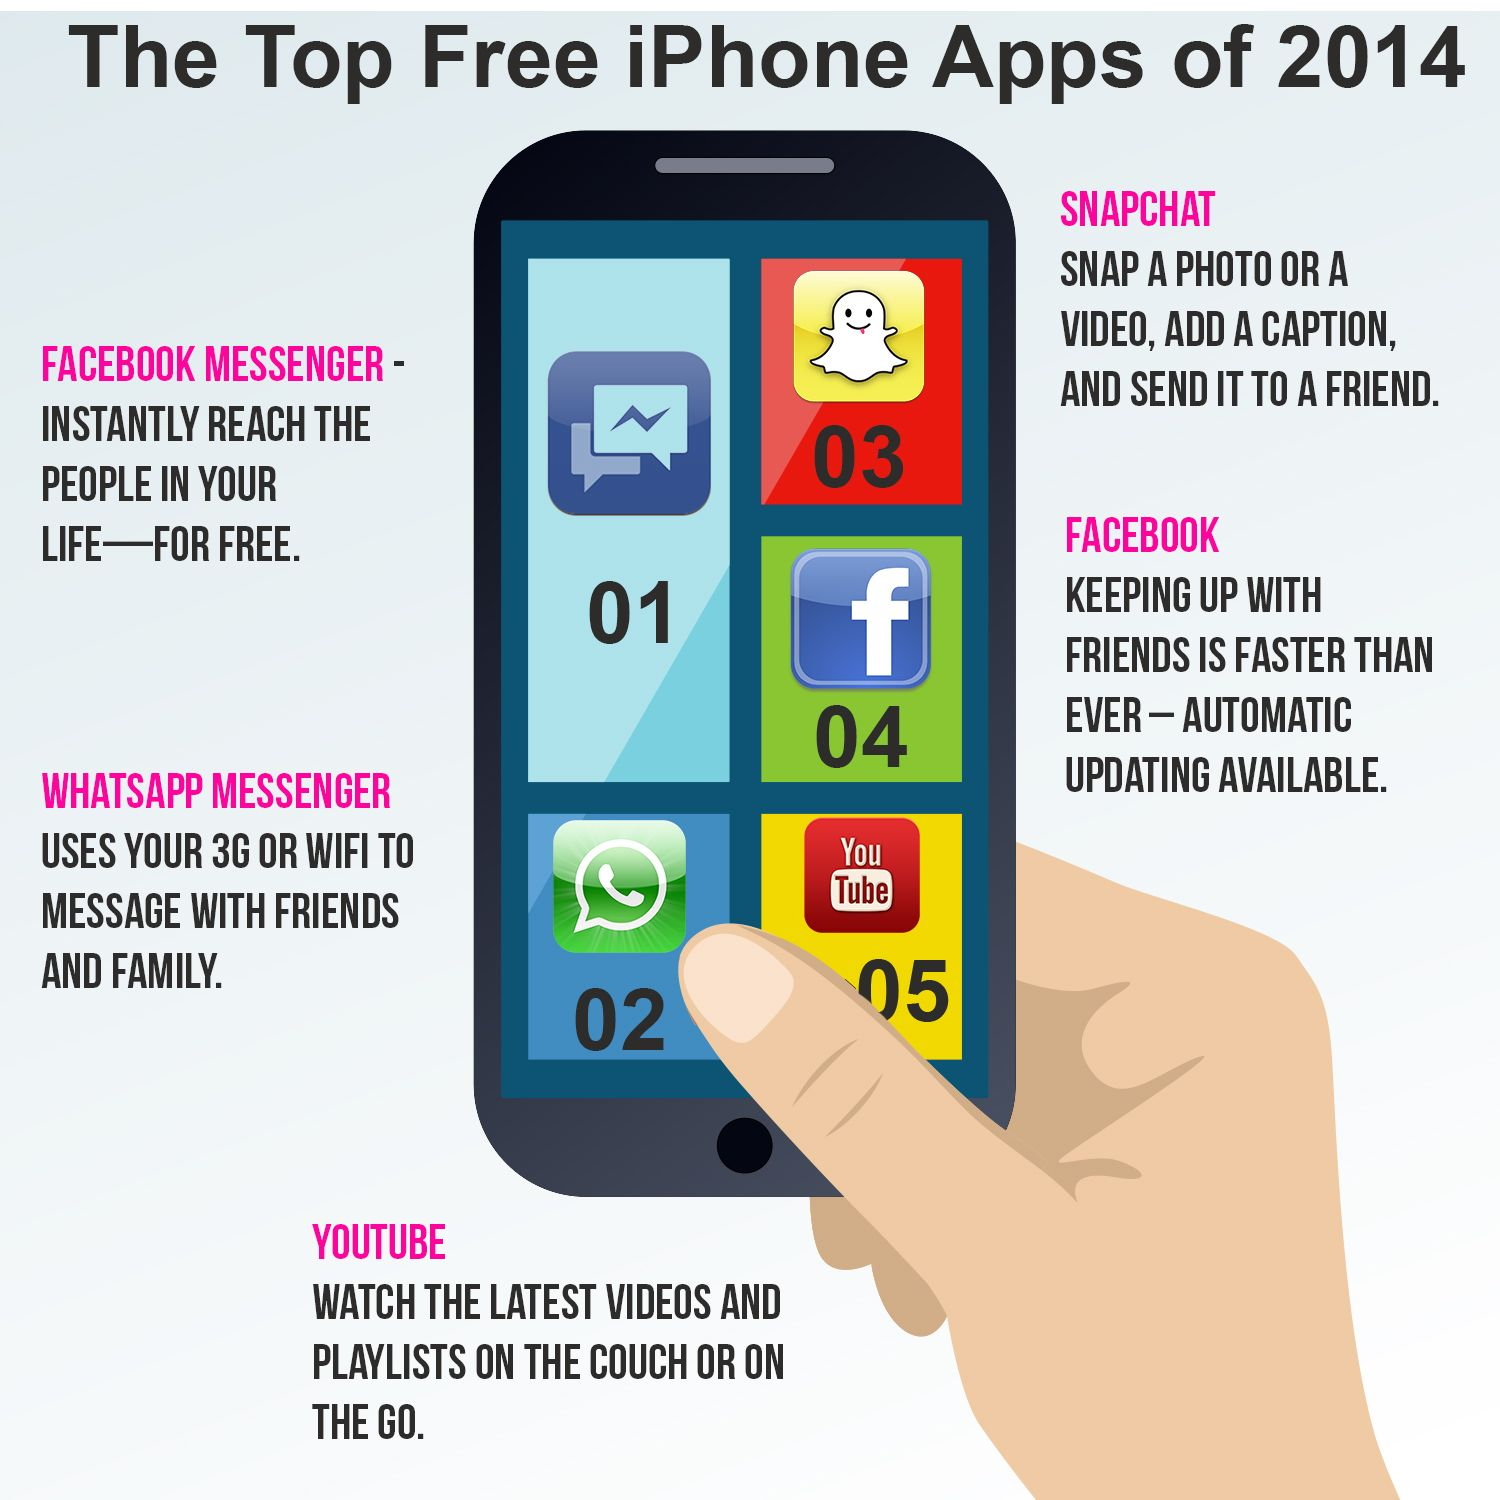 The Top Free iPhone Apps of 2014 Some of the top free